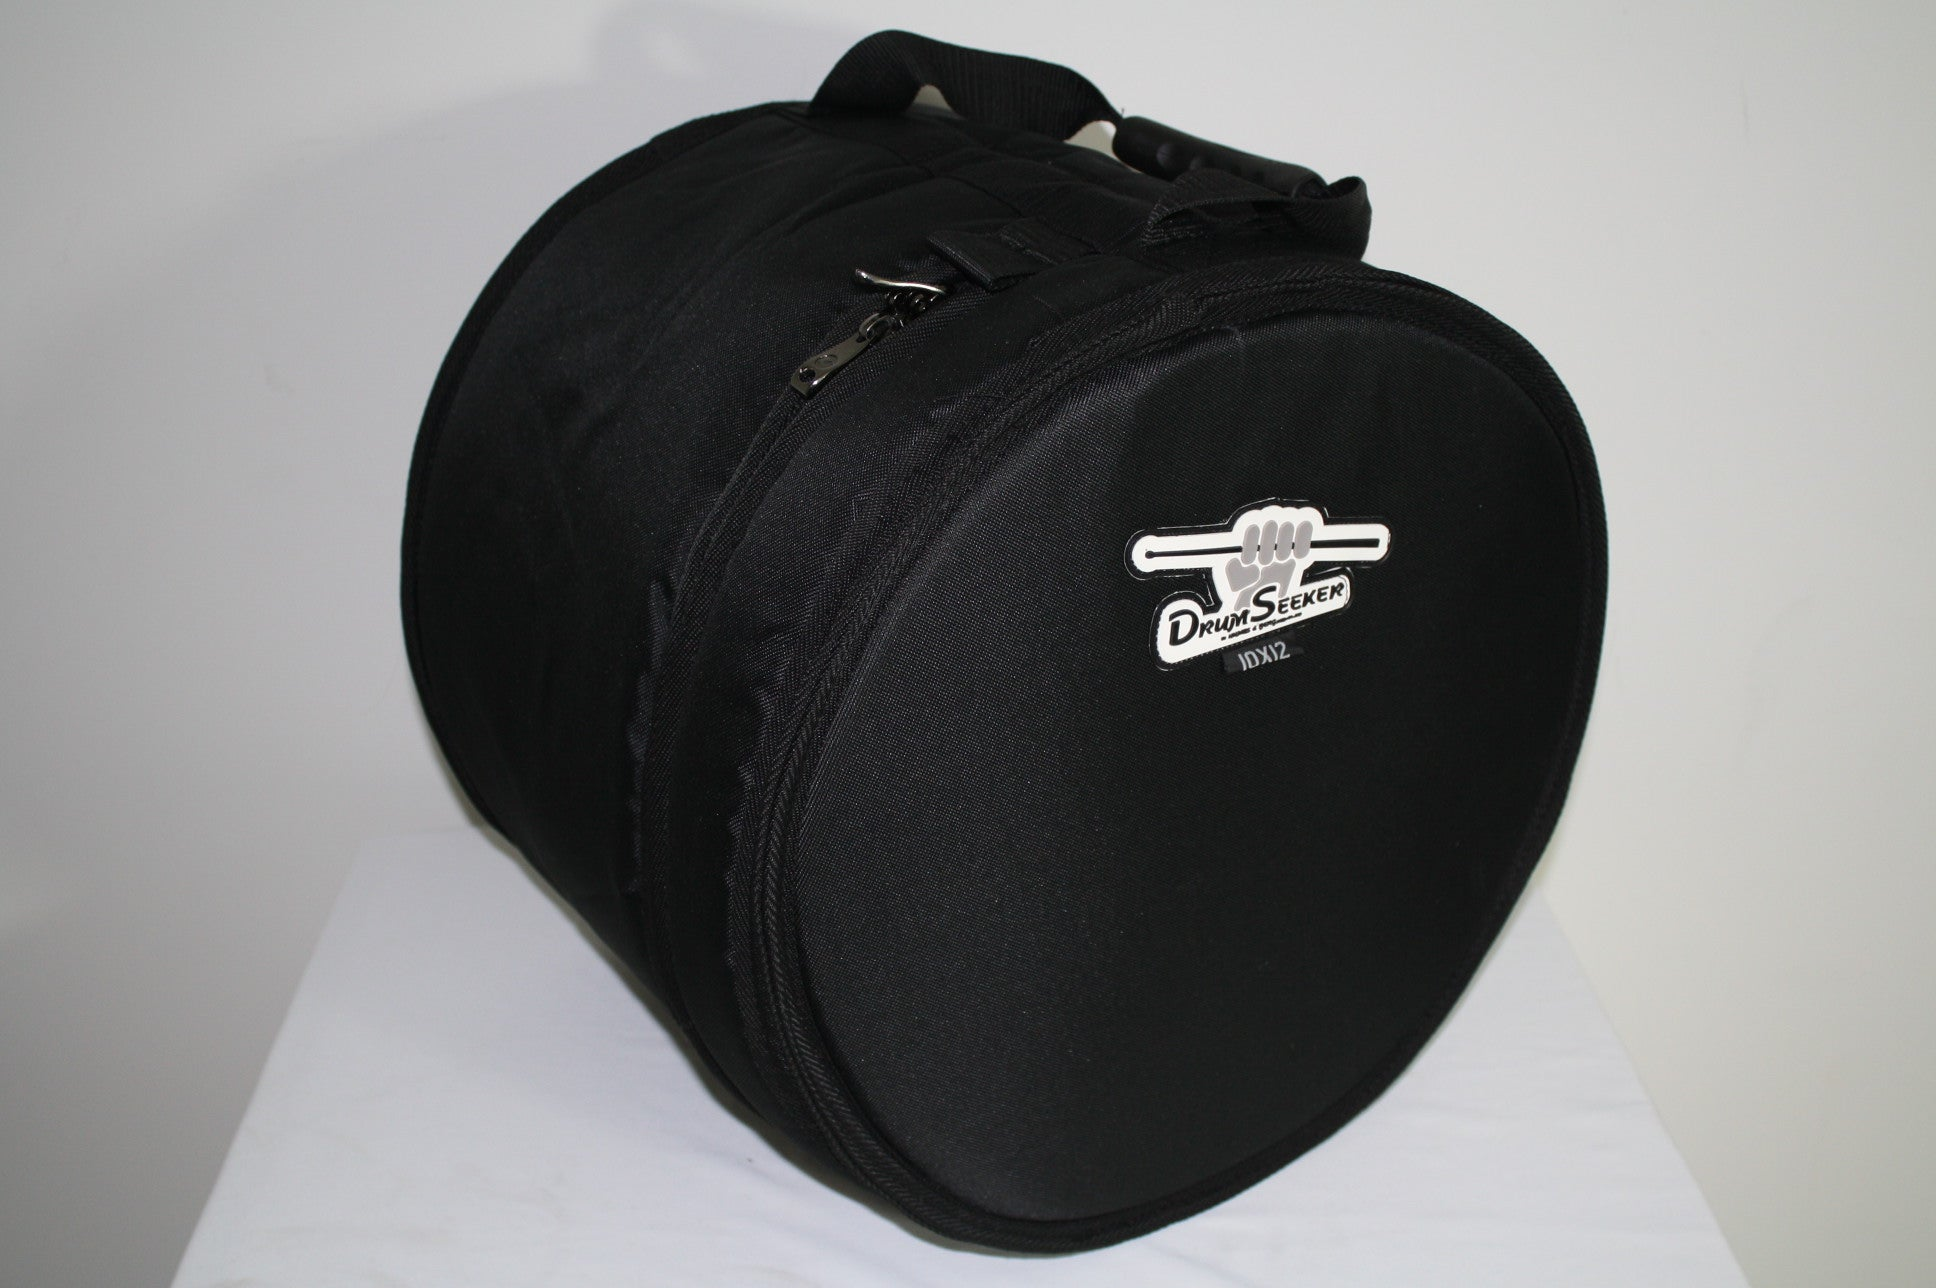 H&B  Drum Seeker 7 x 8 Inches Tom Drum Bag